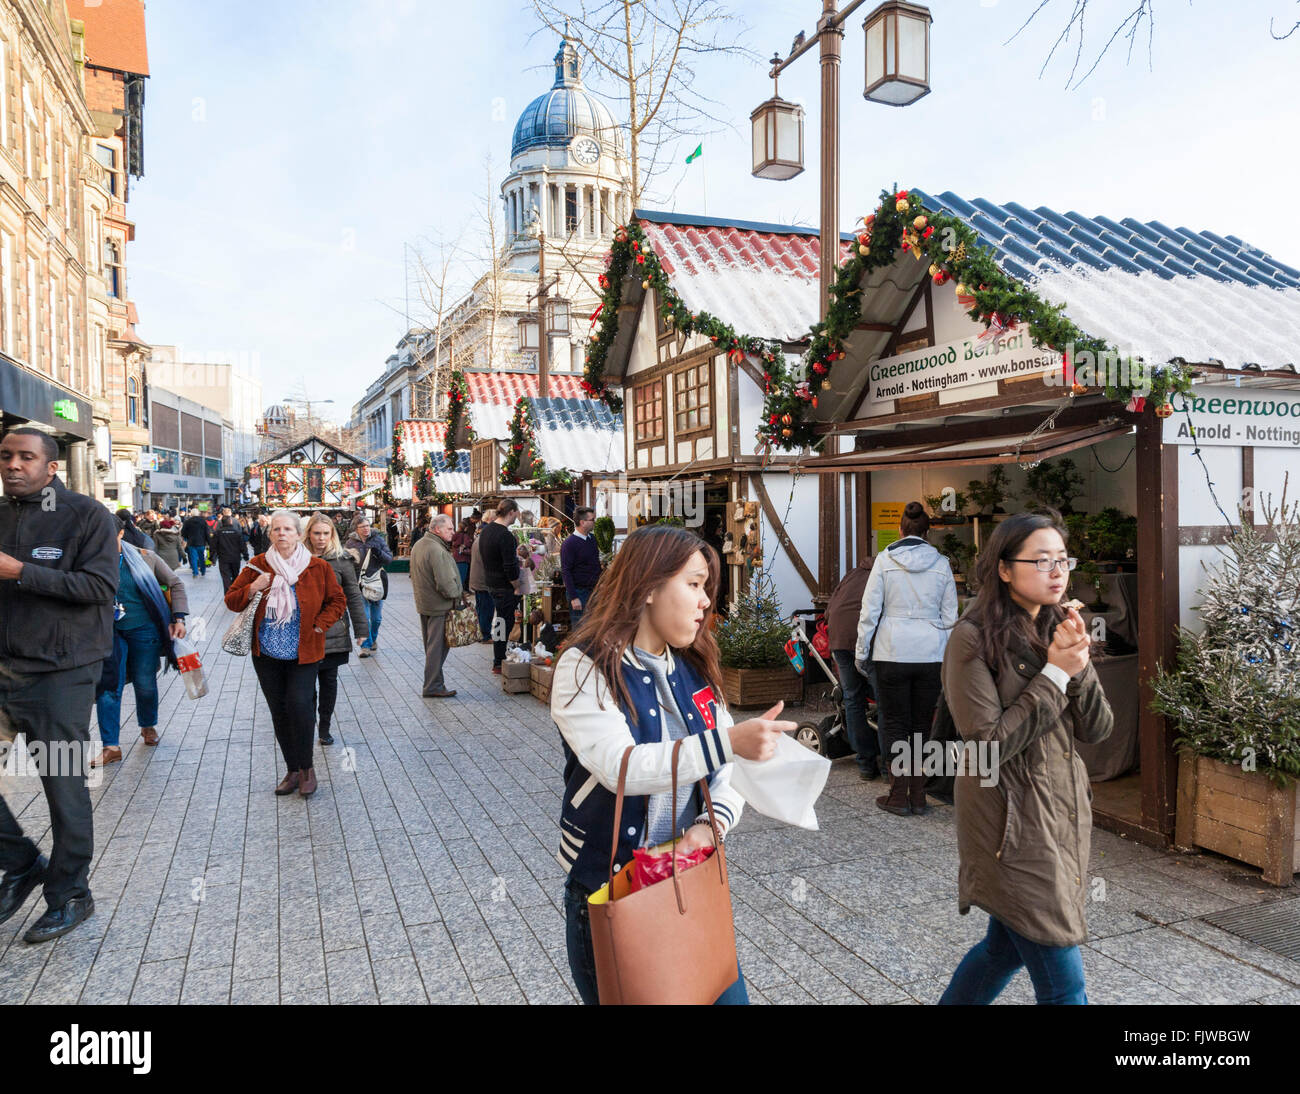 Nottingham Christmas Market, one of many Christmas markets now held in the UK. Long Row, Old Market Square, Nottingham, - Stock Image